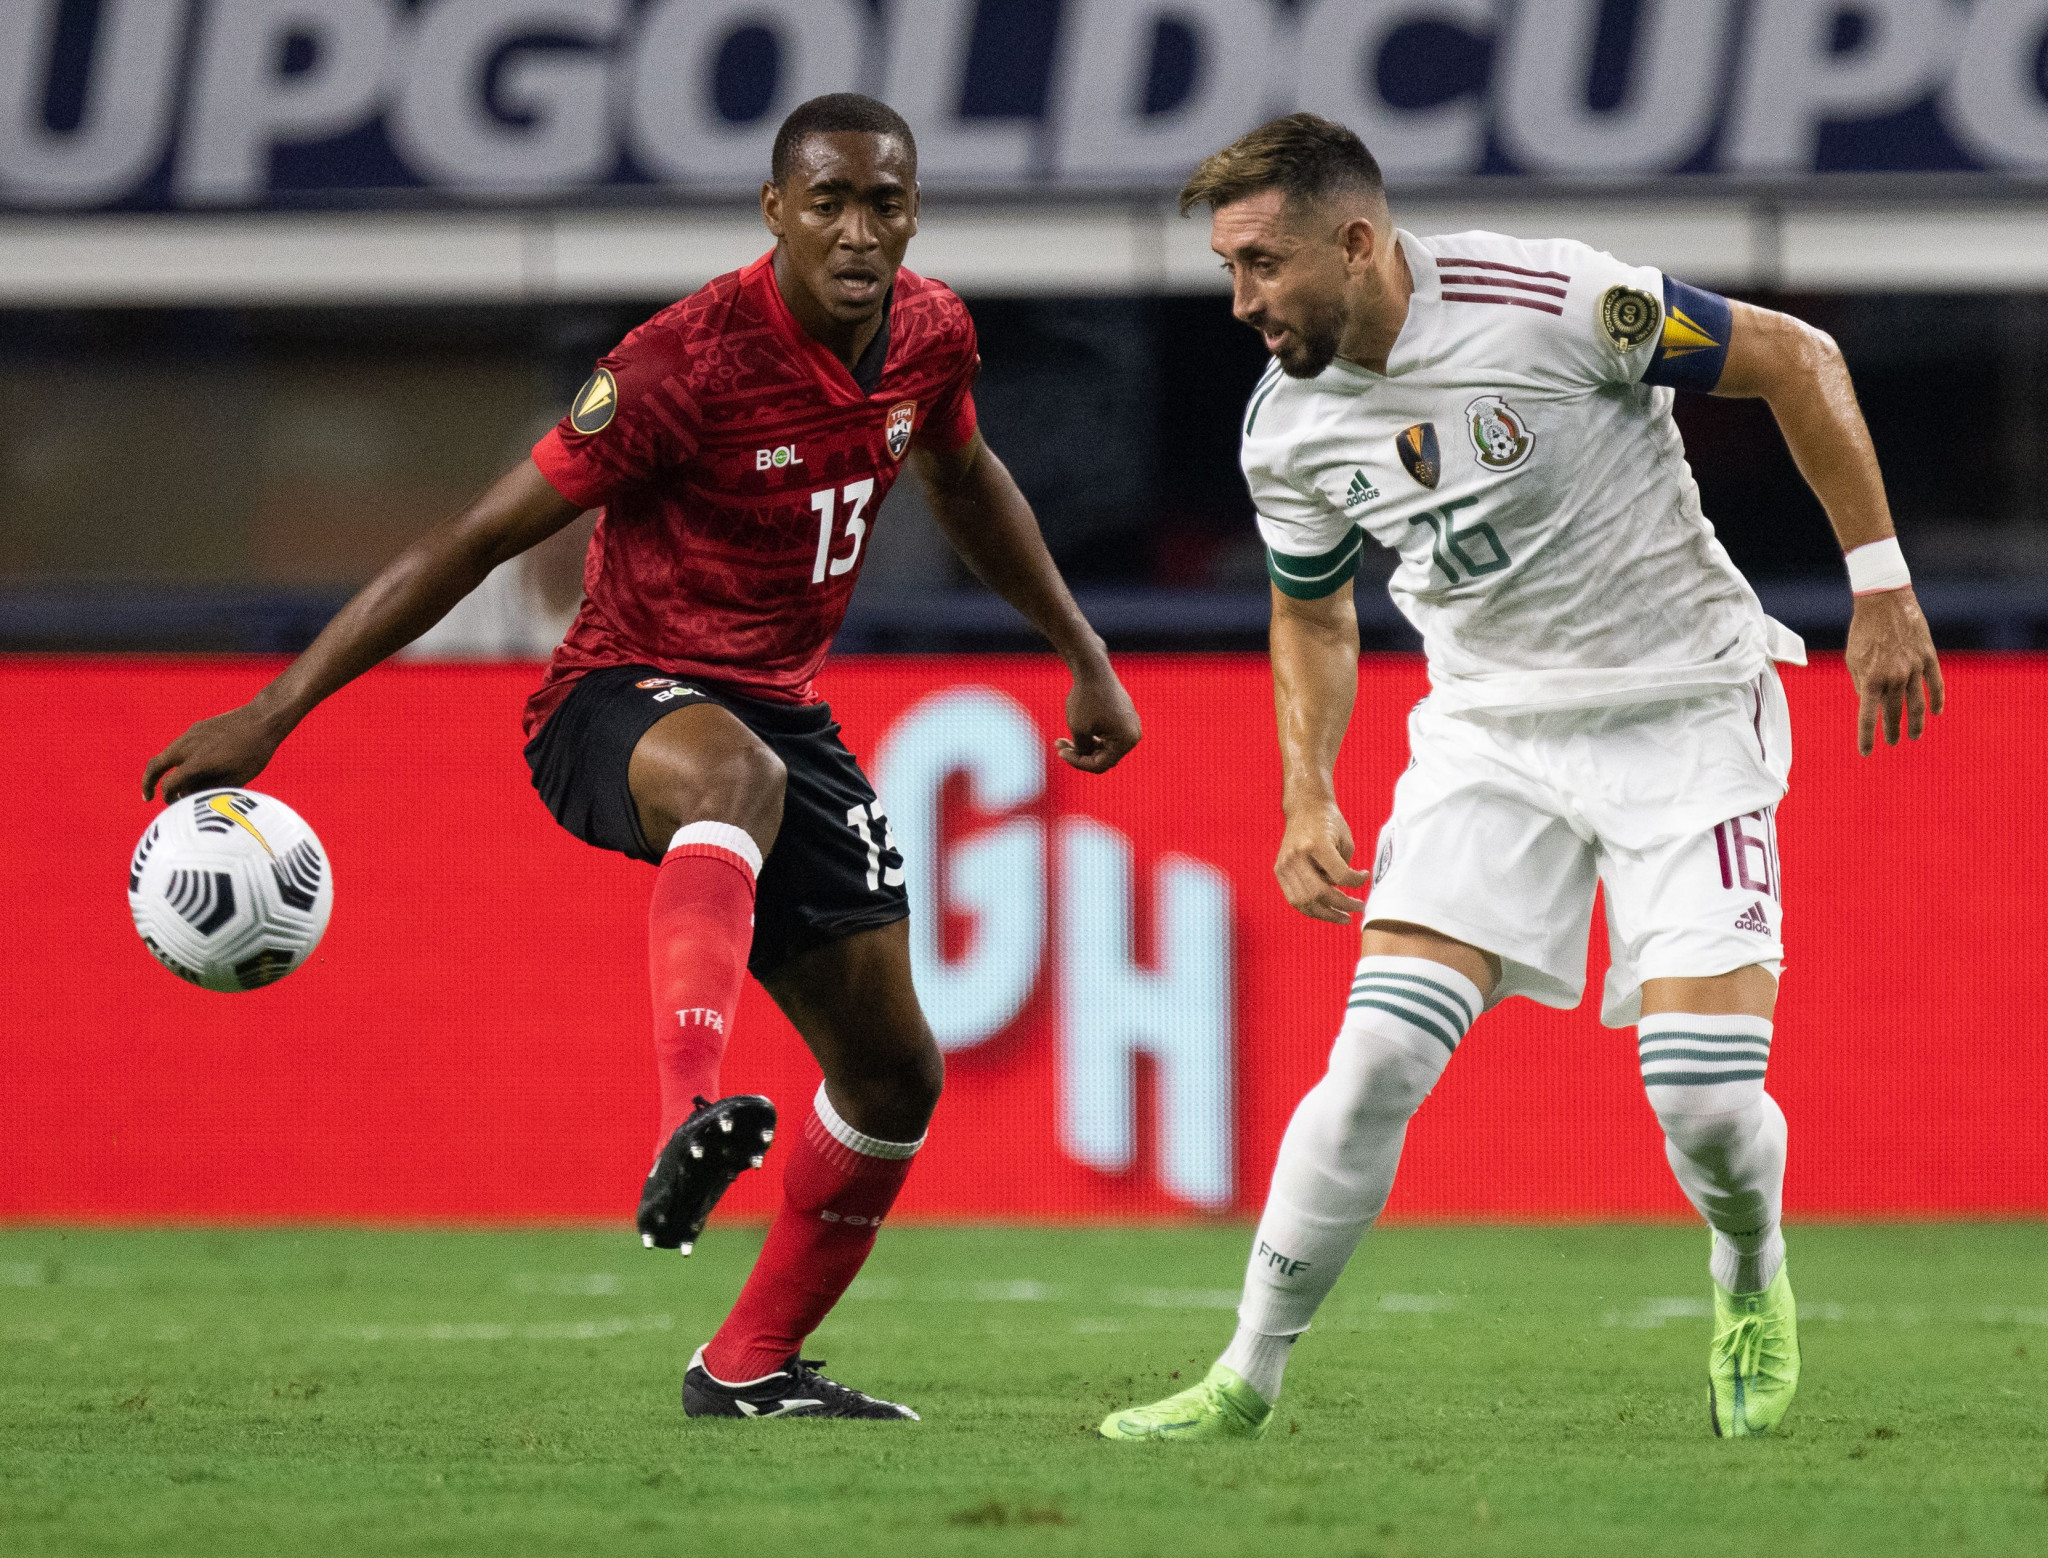 Mexico frustrated by Trinidad and Tobago as Gold Cup begins